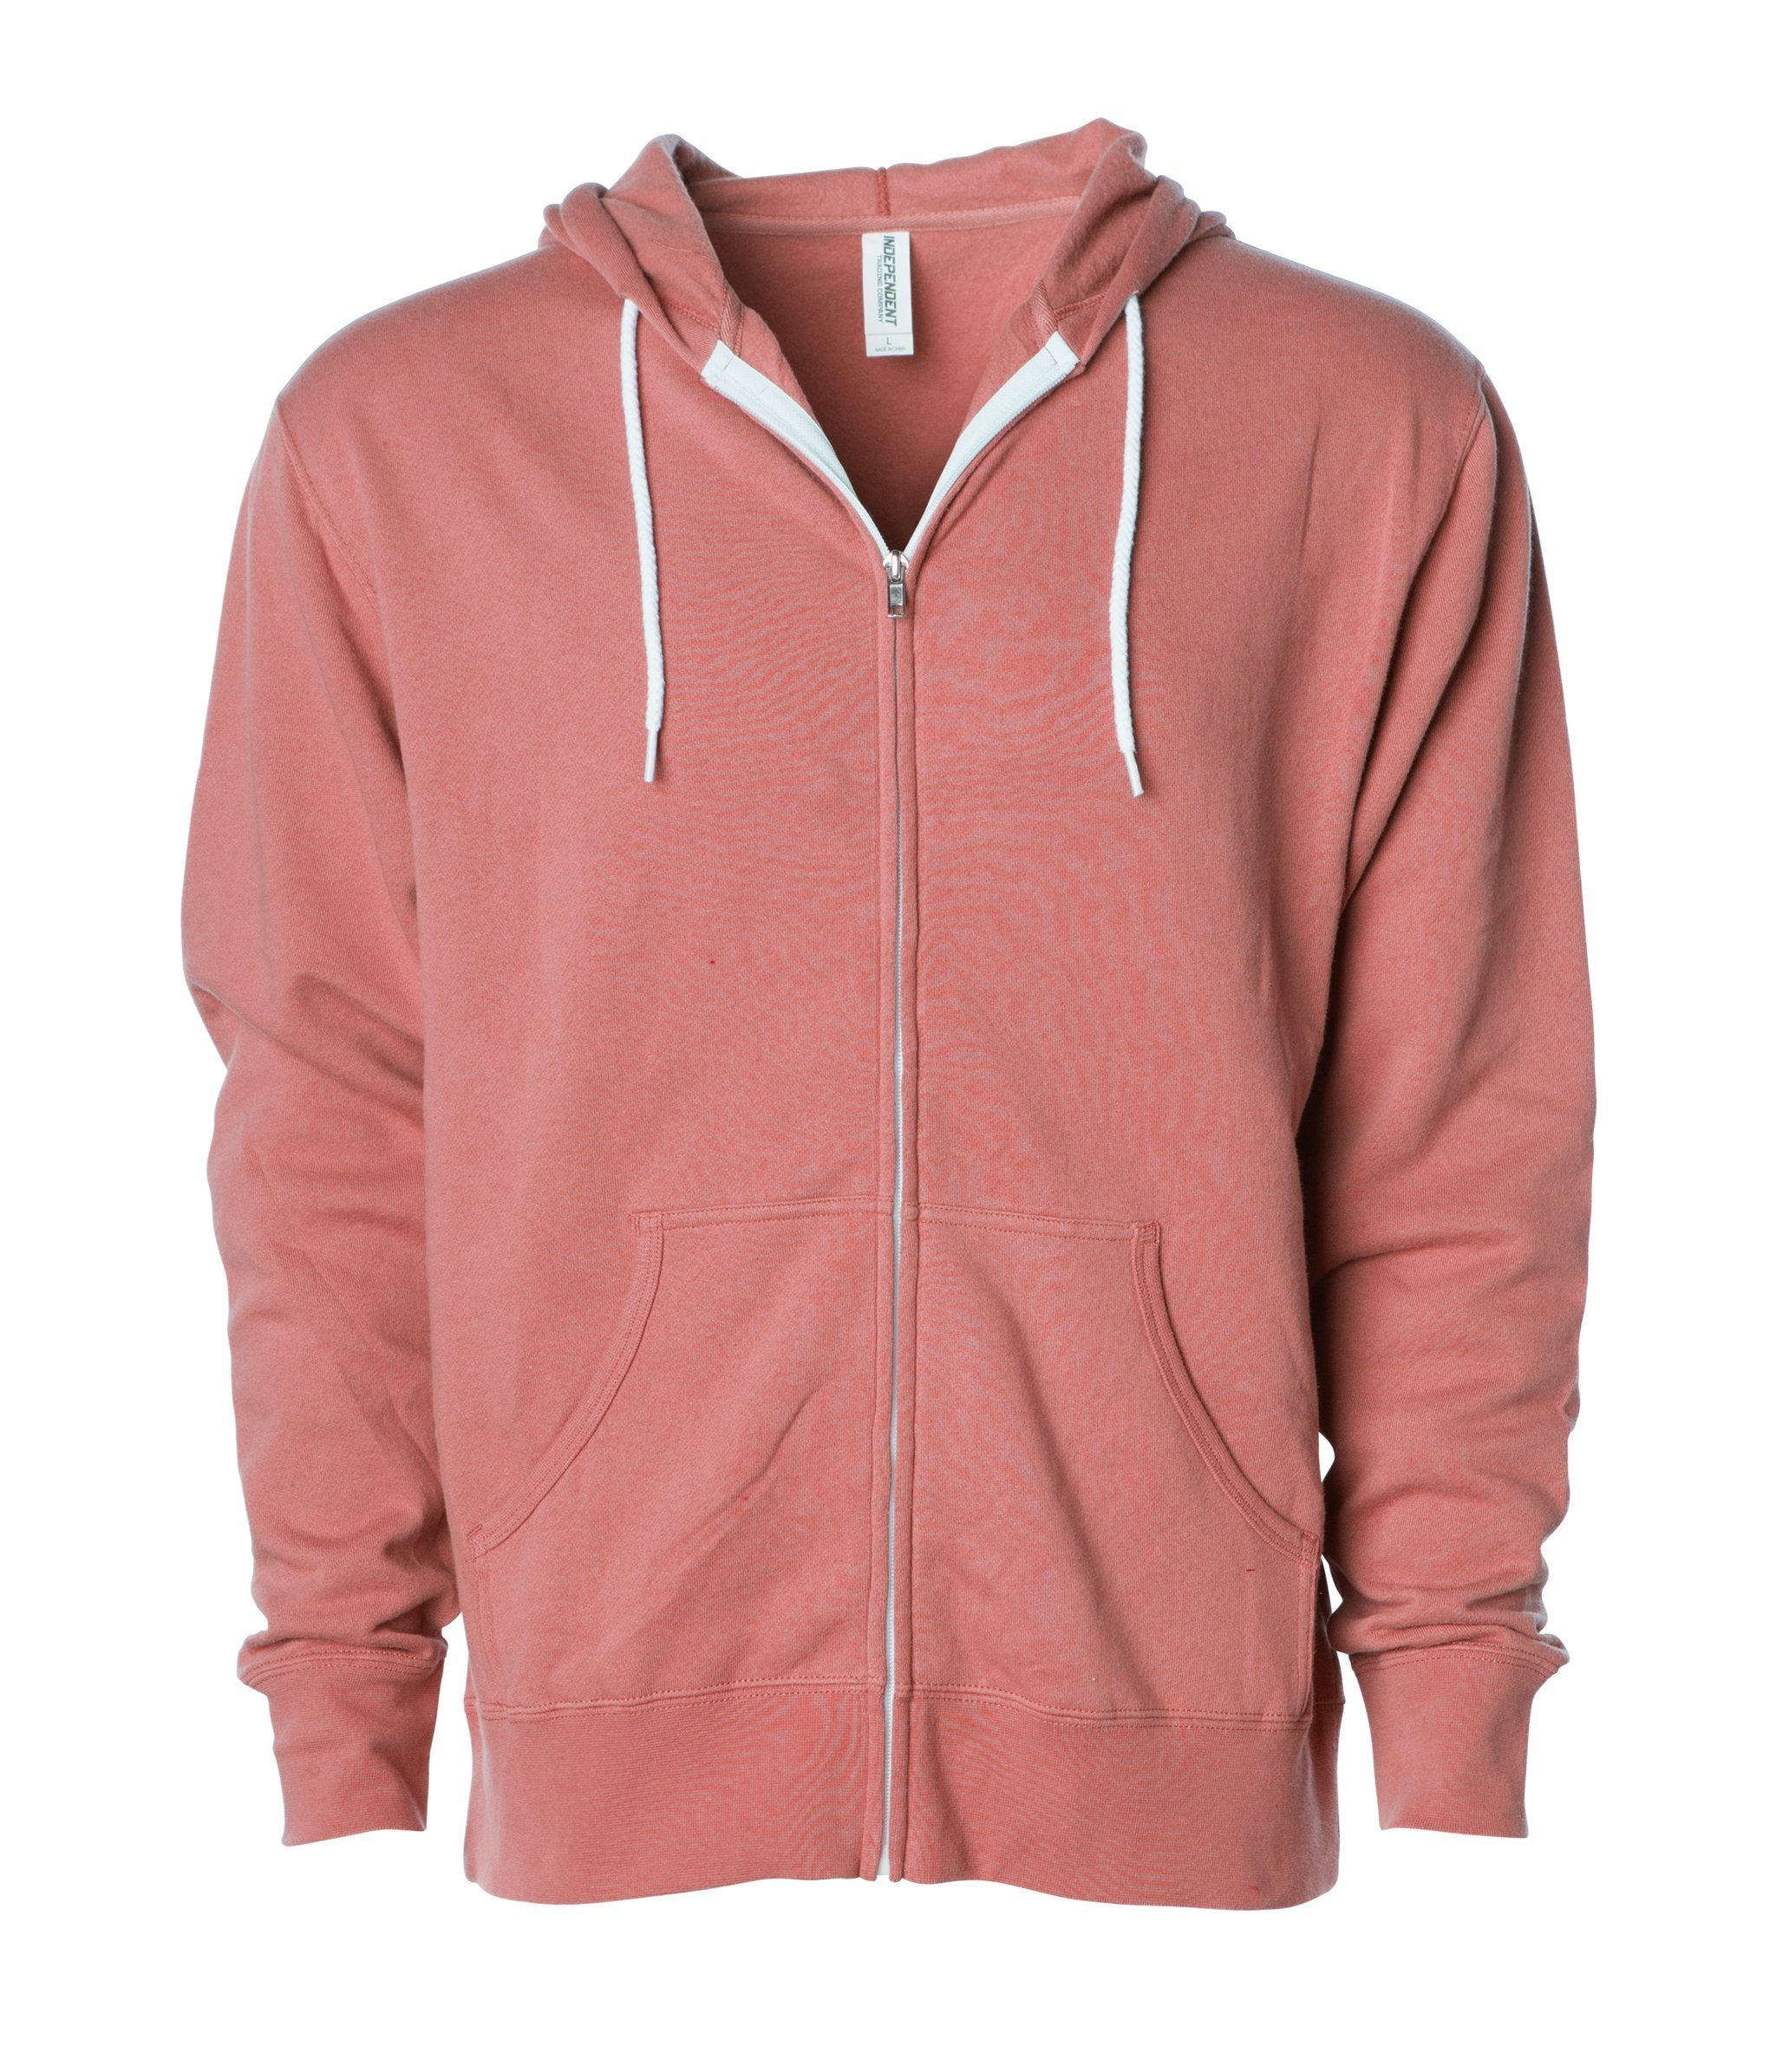 Unisex Lightweight Fitted Zip Hooded Sweatshirt